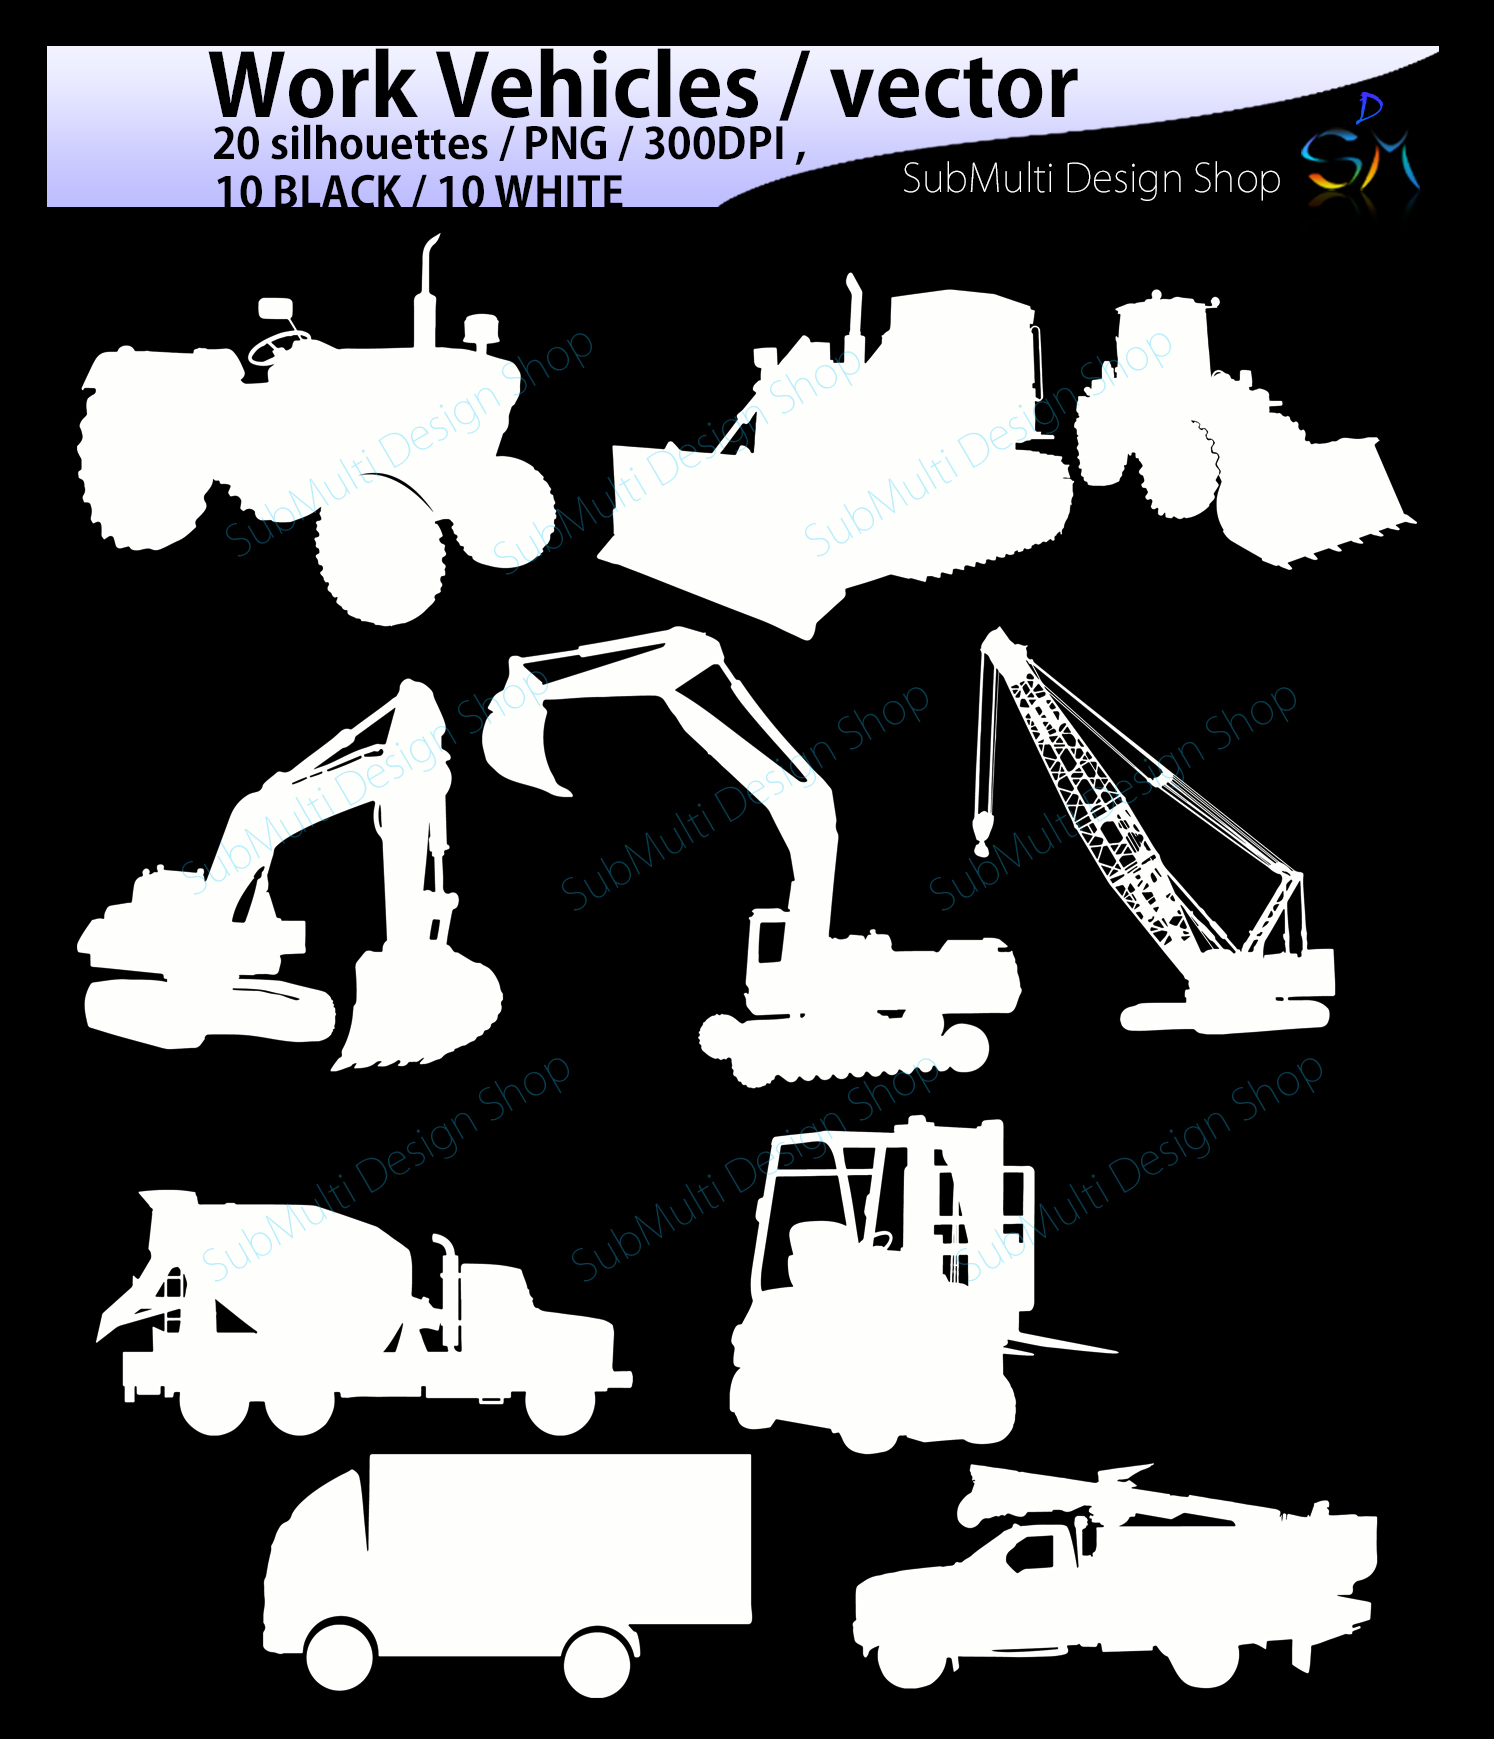 work vehicle / work vehicles silhouette / SVG file / Construction Machines Silhouettes / printable vehicle silhouette / vector EPS example image 3